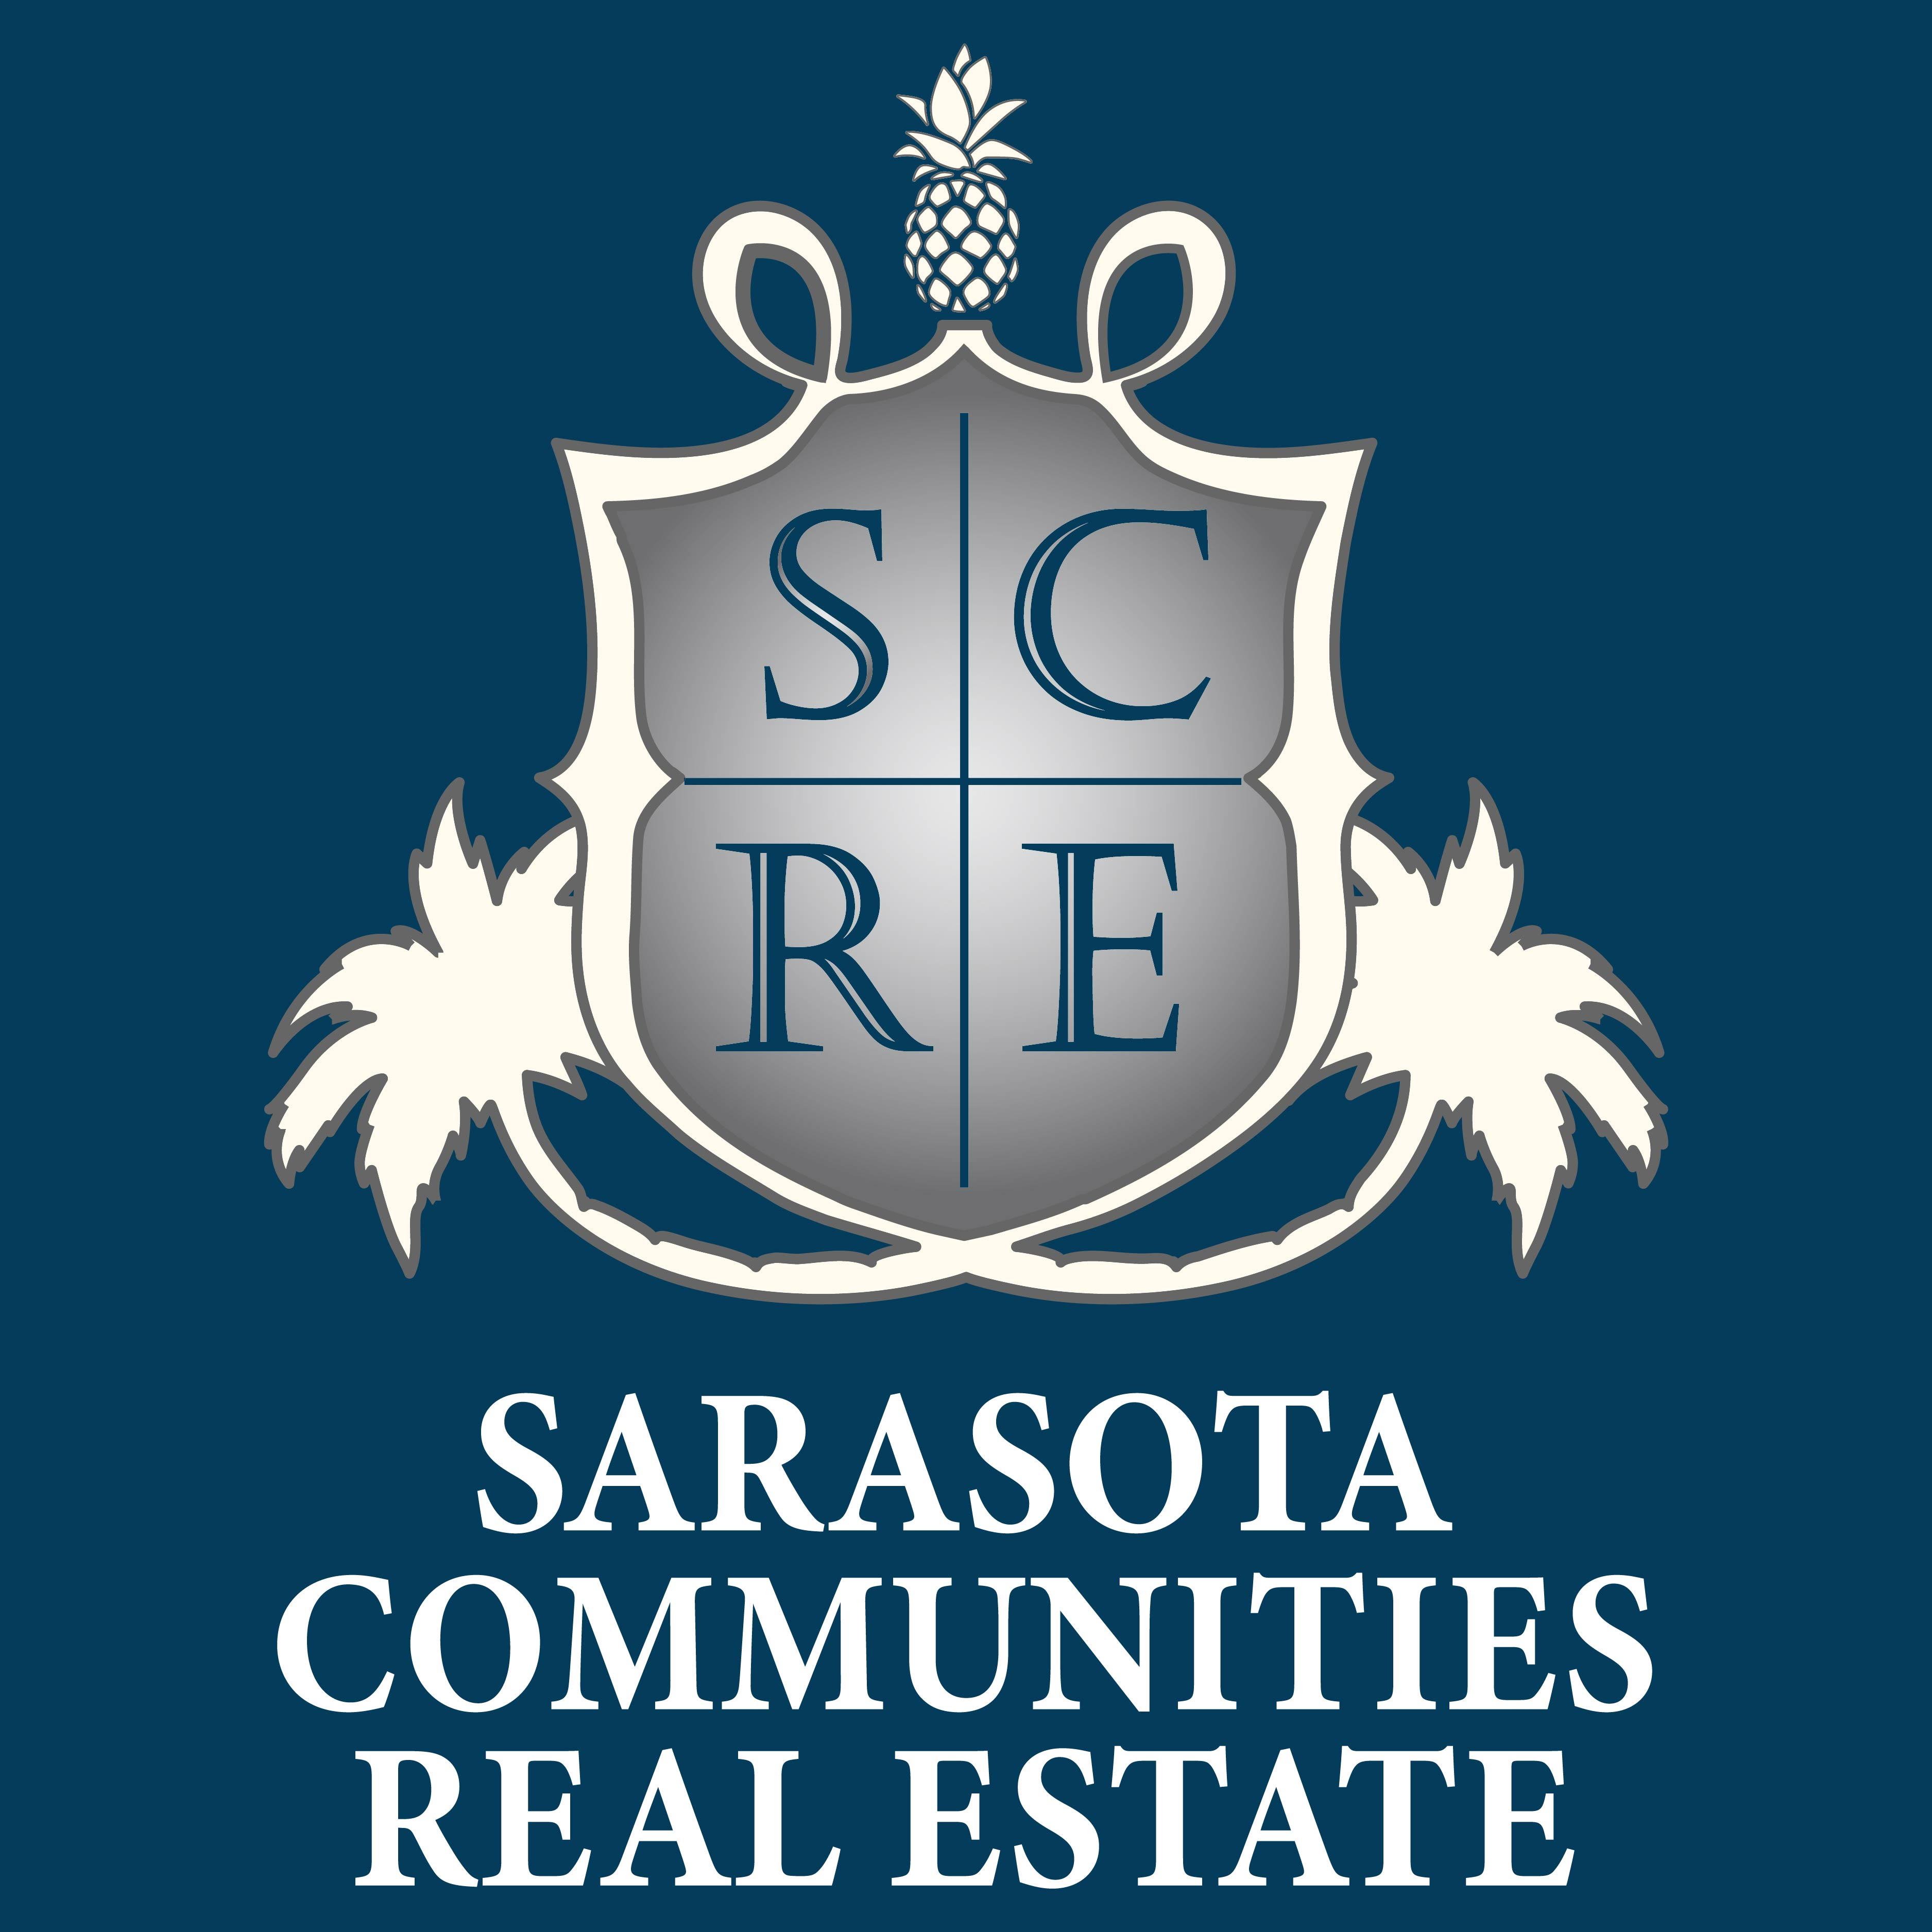 Enclave Sarasota Communities Real Estate